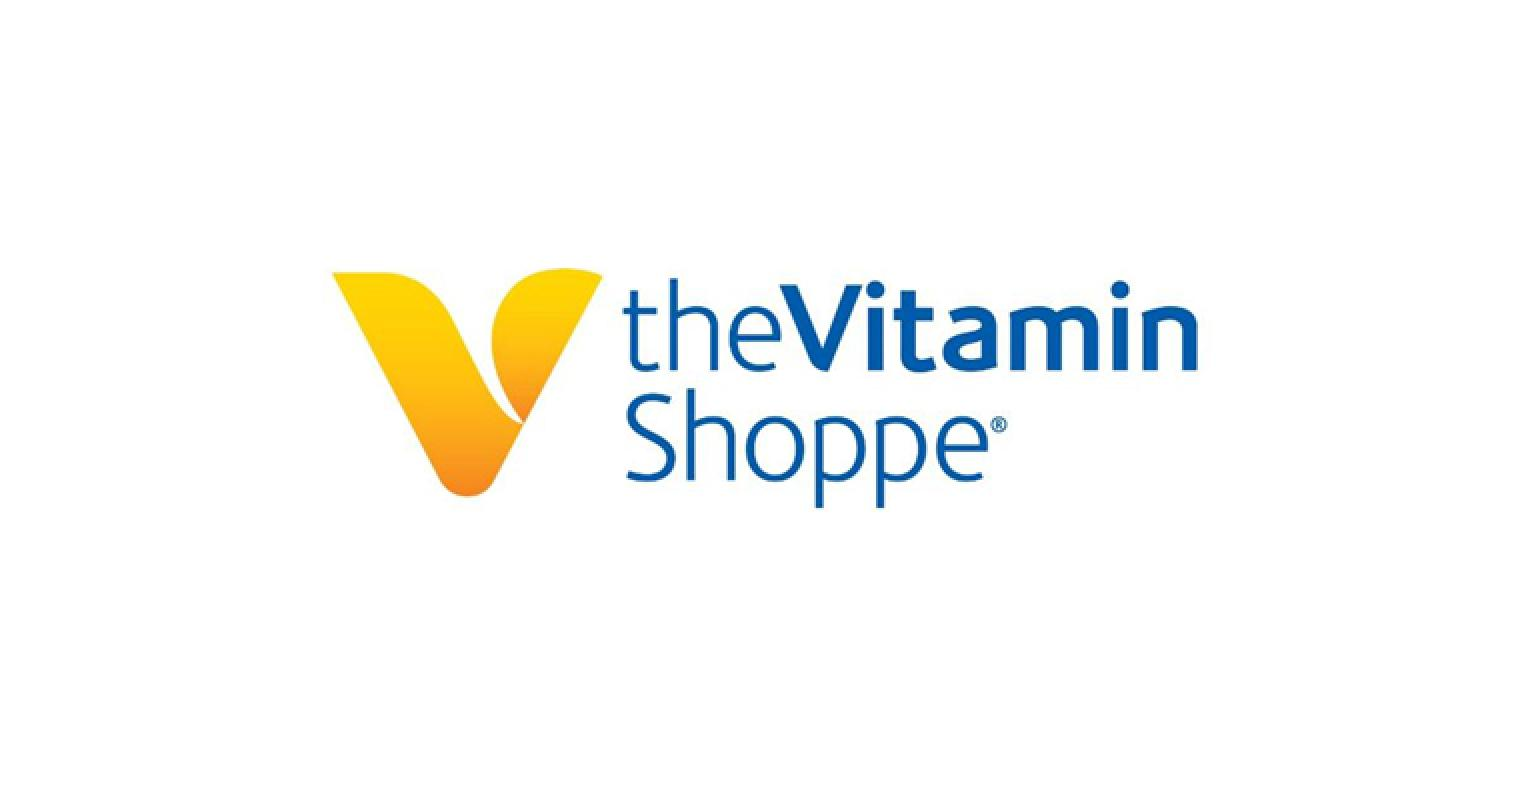 The Vitaimin Shoppe first quarter 2018.